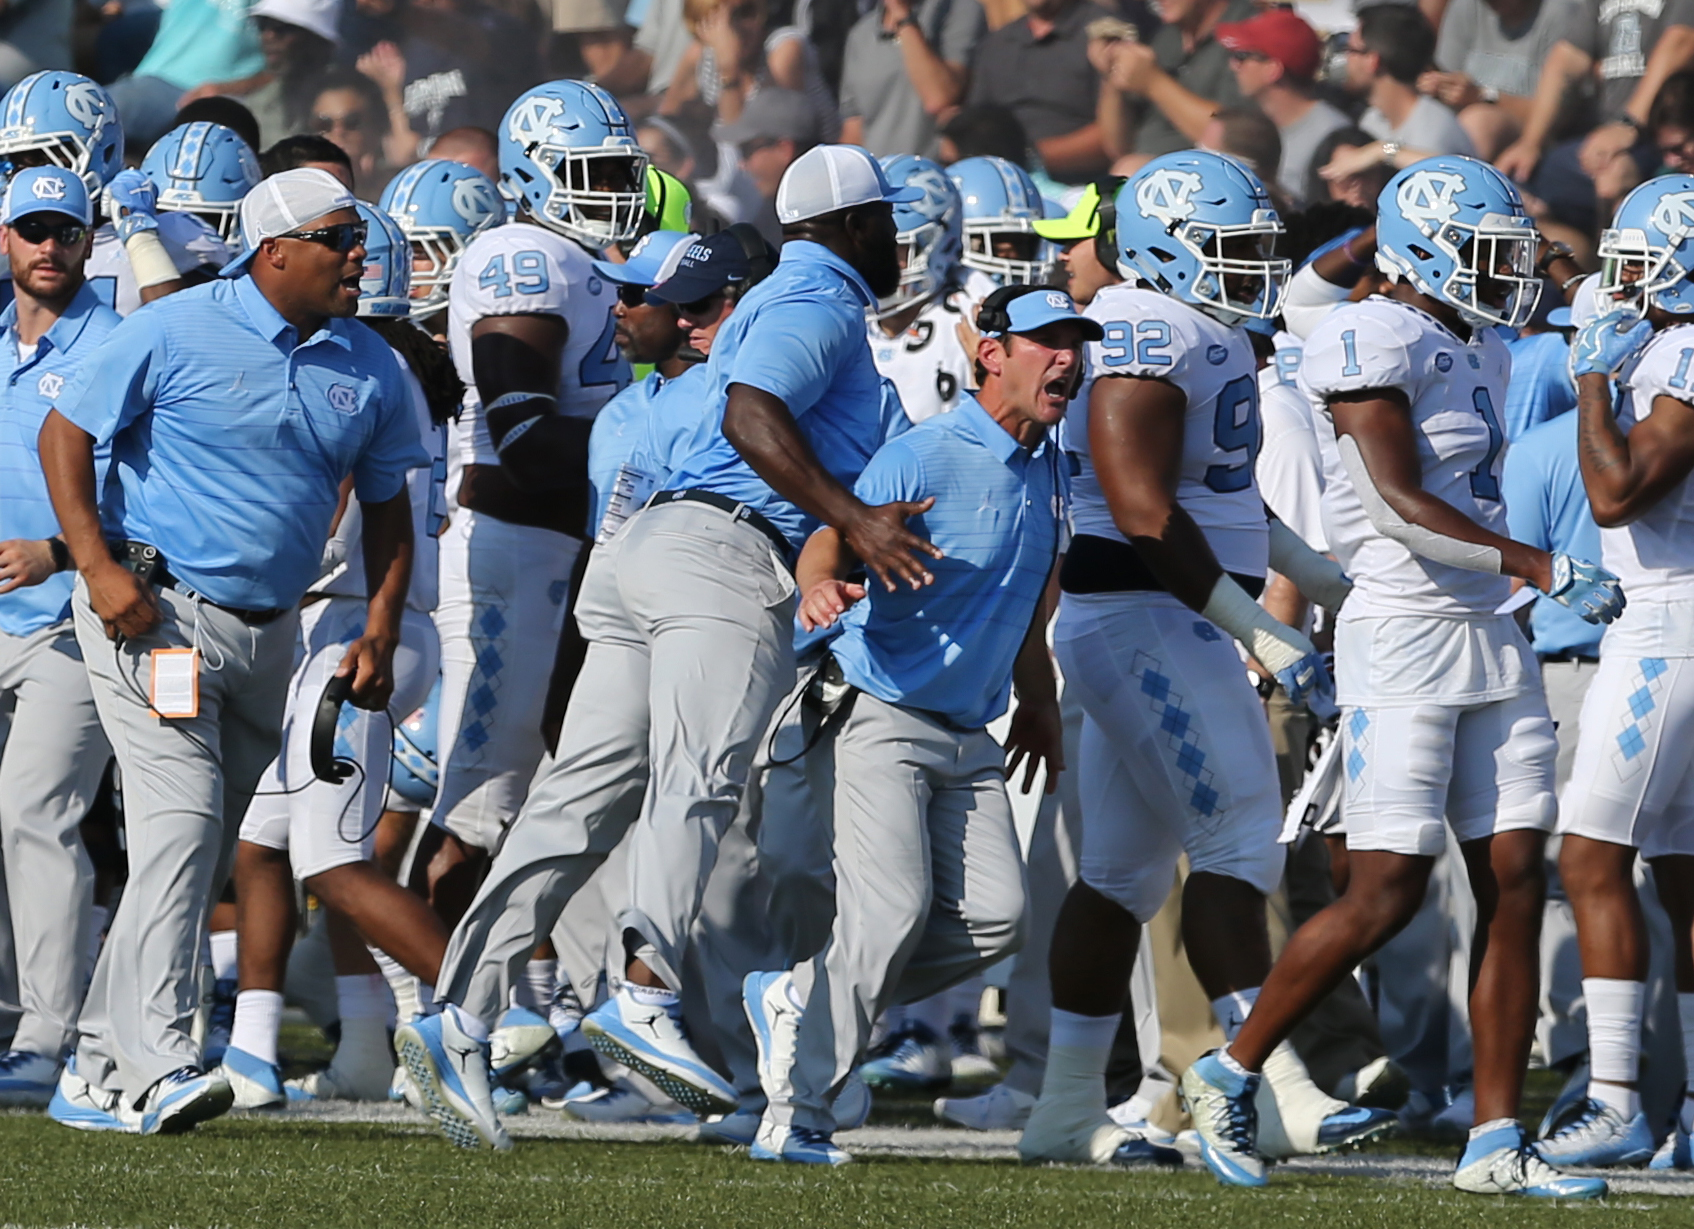 The UNC sideline erupts after the Tarheels forced an Old Dominion fumble in the second half of an NCAA college football game, Saturday, Sept. 16, 2017 in Norfolk, Va.